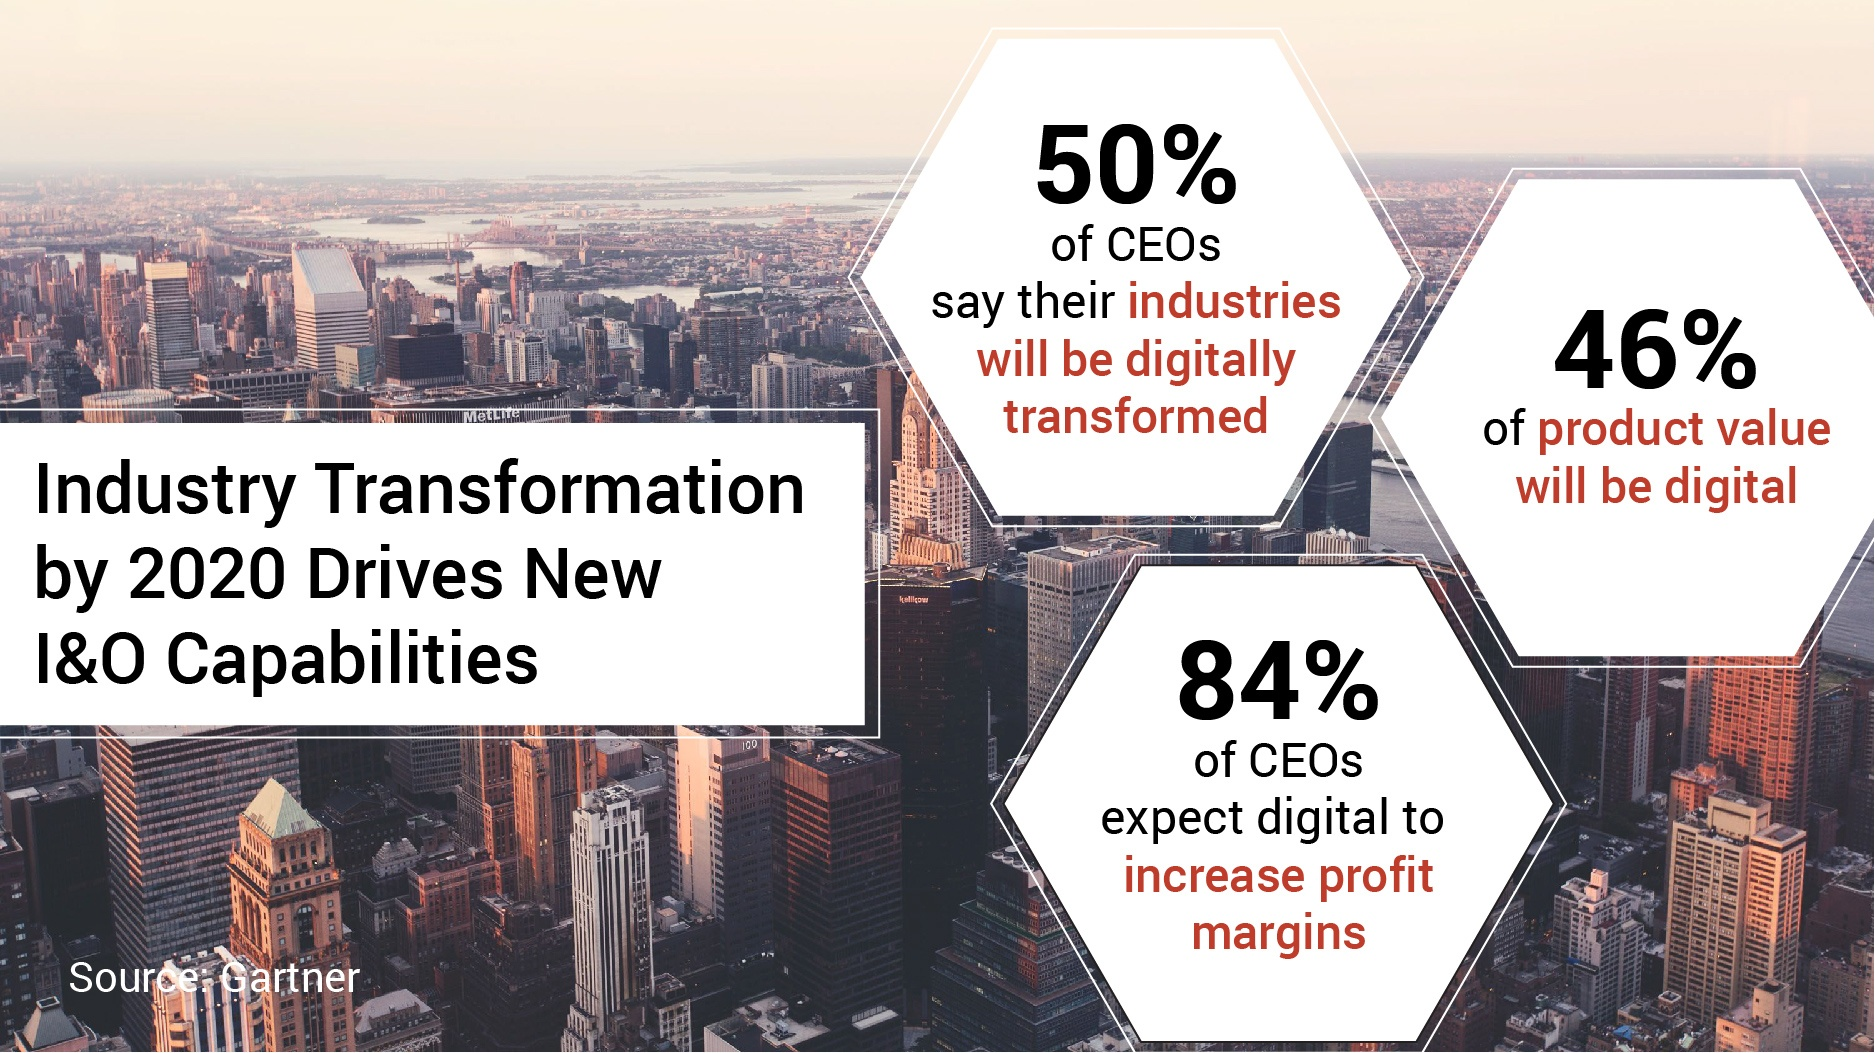 Build New Capabilities To Support Digital Business